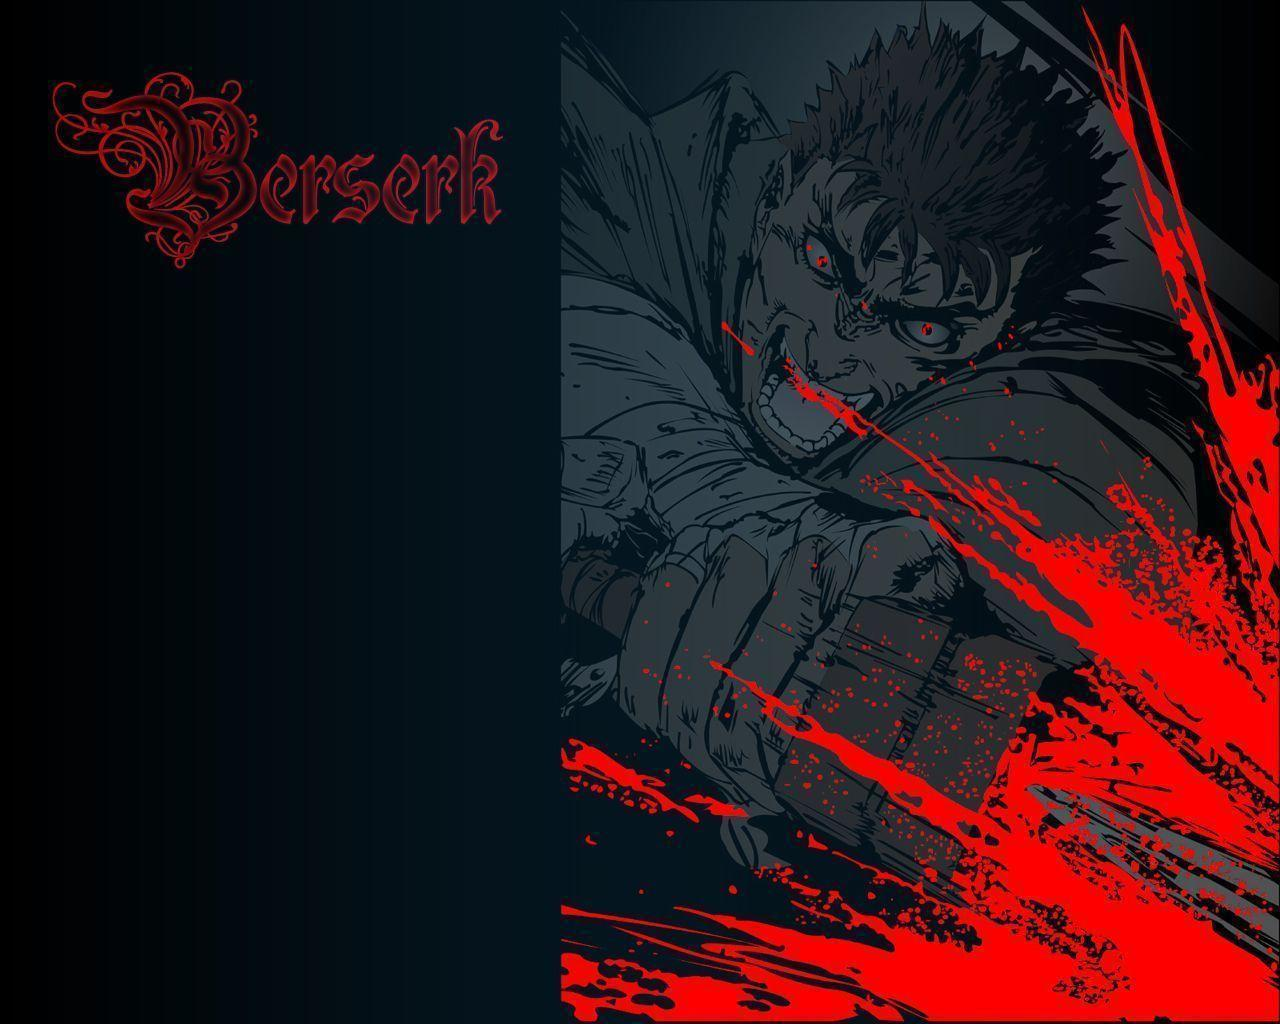 berserk wallpapers free download - photo #30